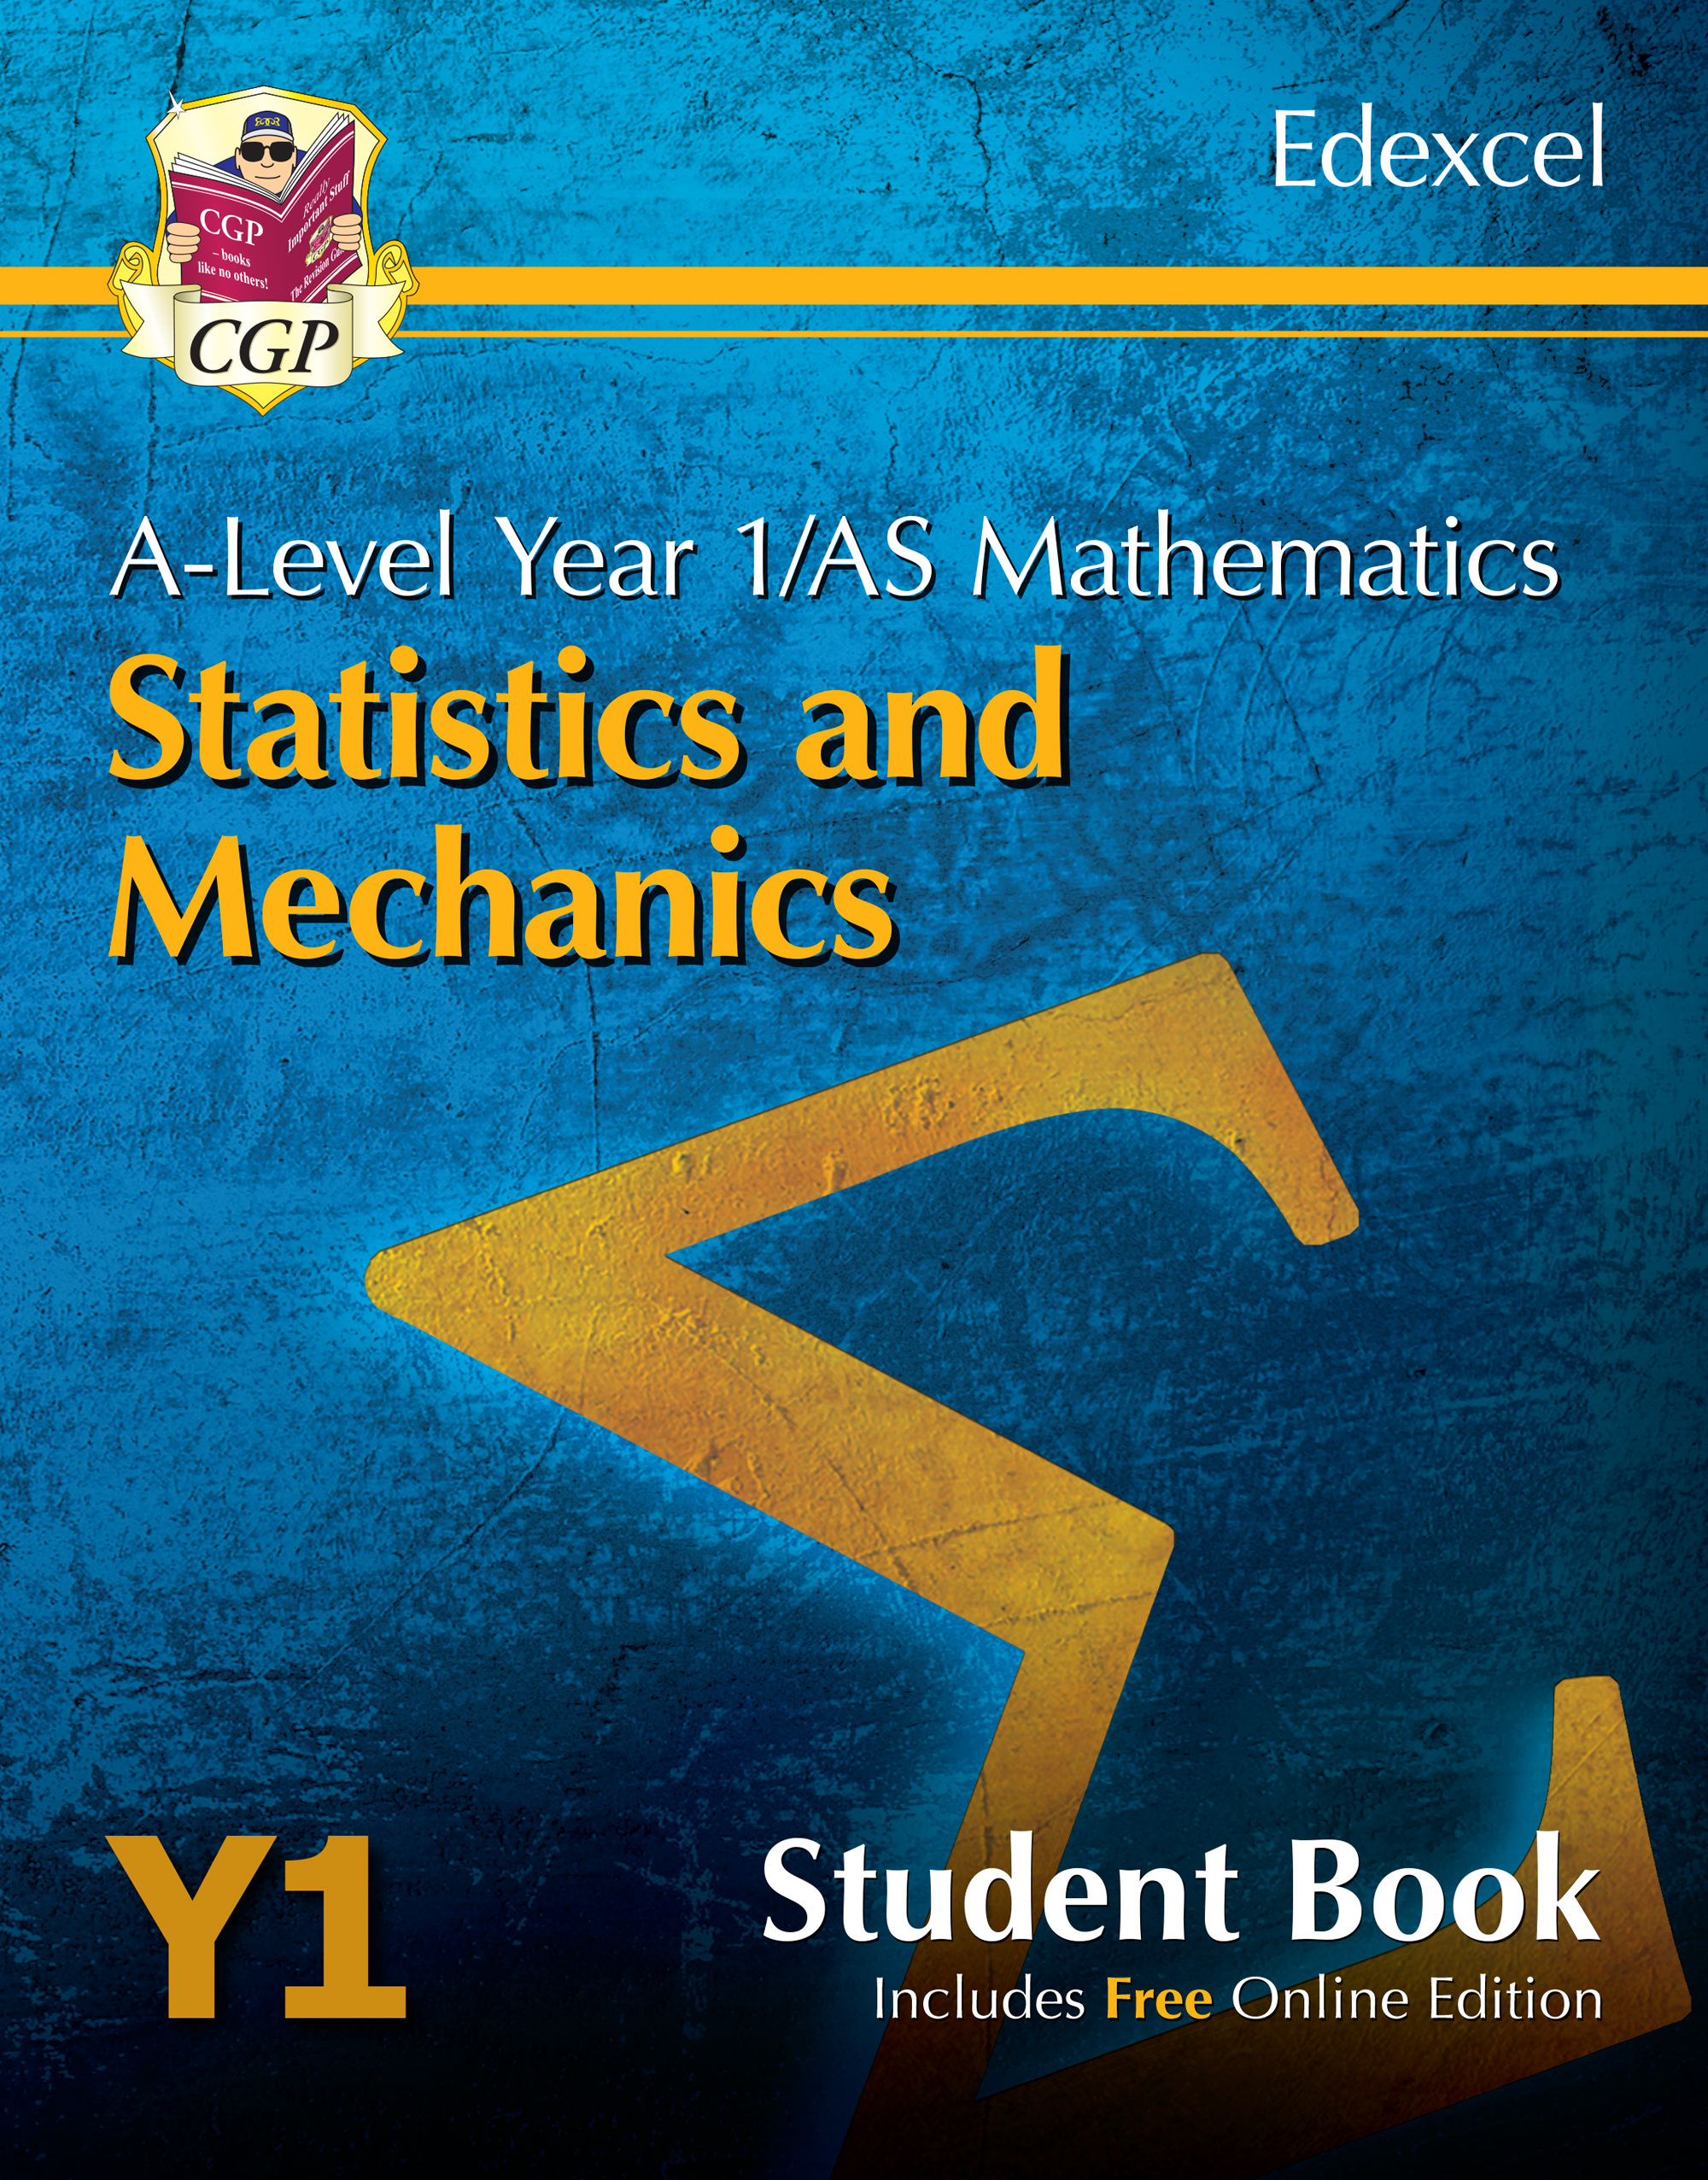 MESMT51 - New A-Level Maths for Edexcel: Statistics & Mechanics - Year 1/AS Student Book (with Onlin